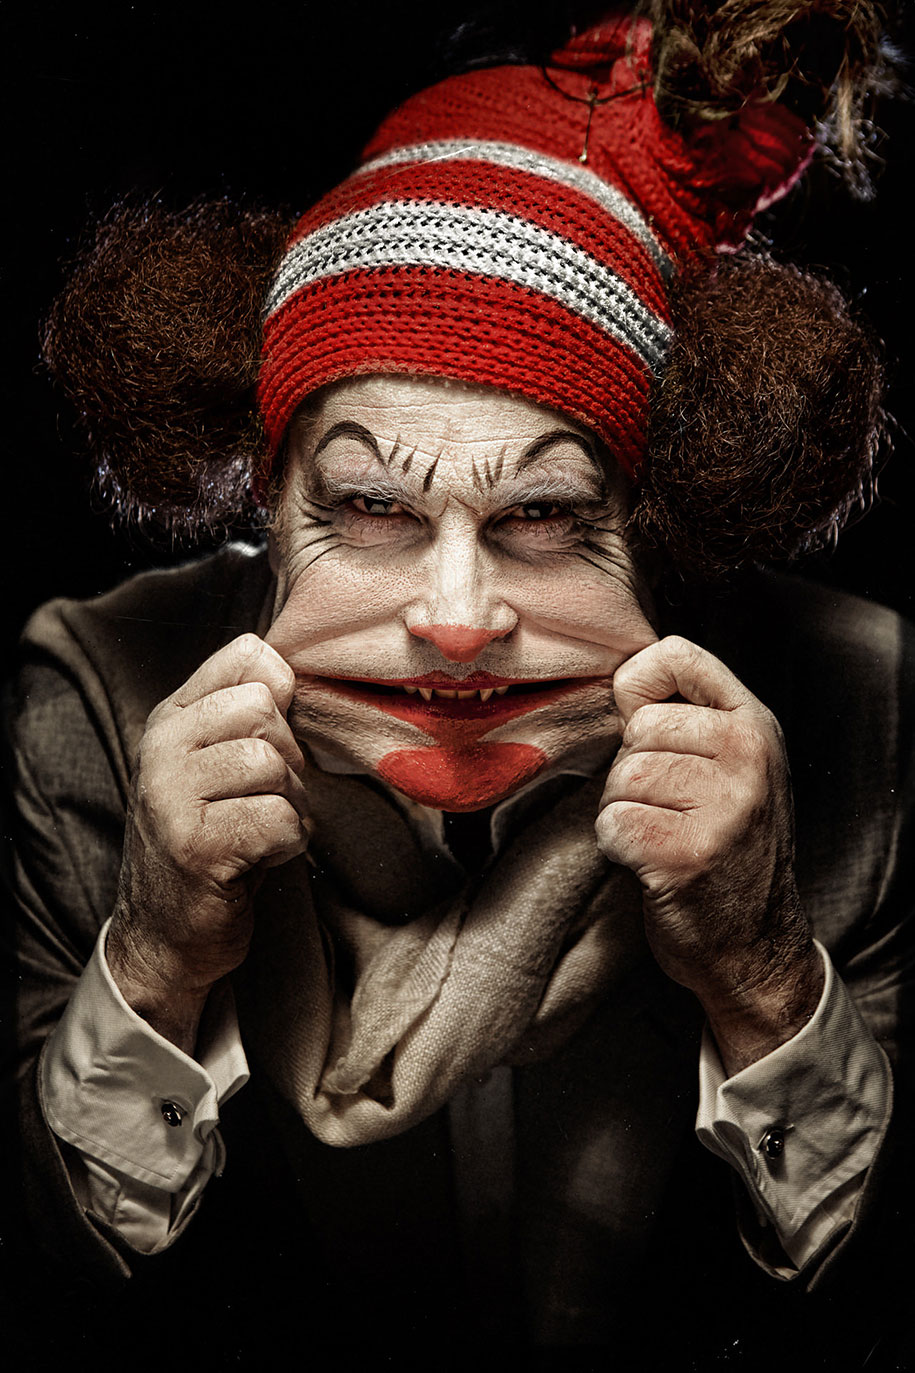 macabre-scary-clown-portraits-clownville-eolo-perfido-23